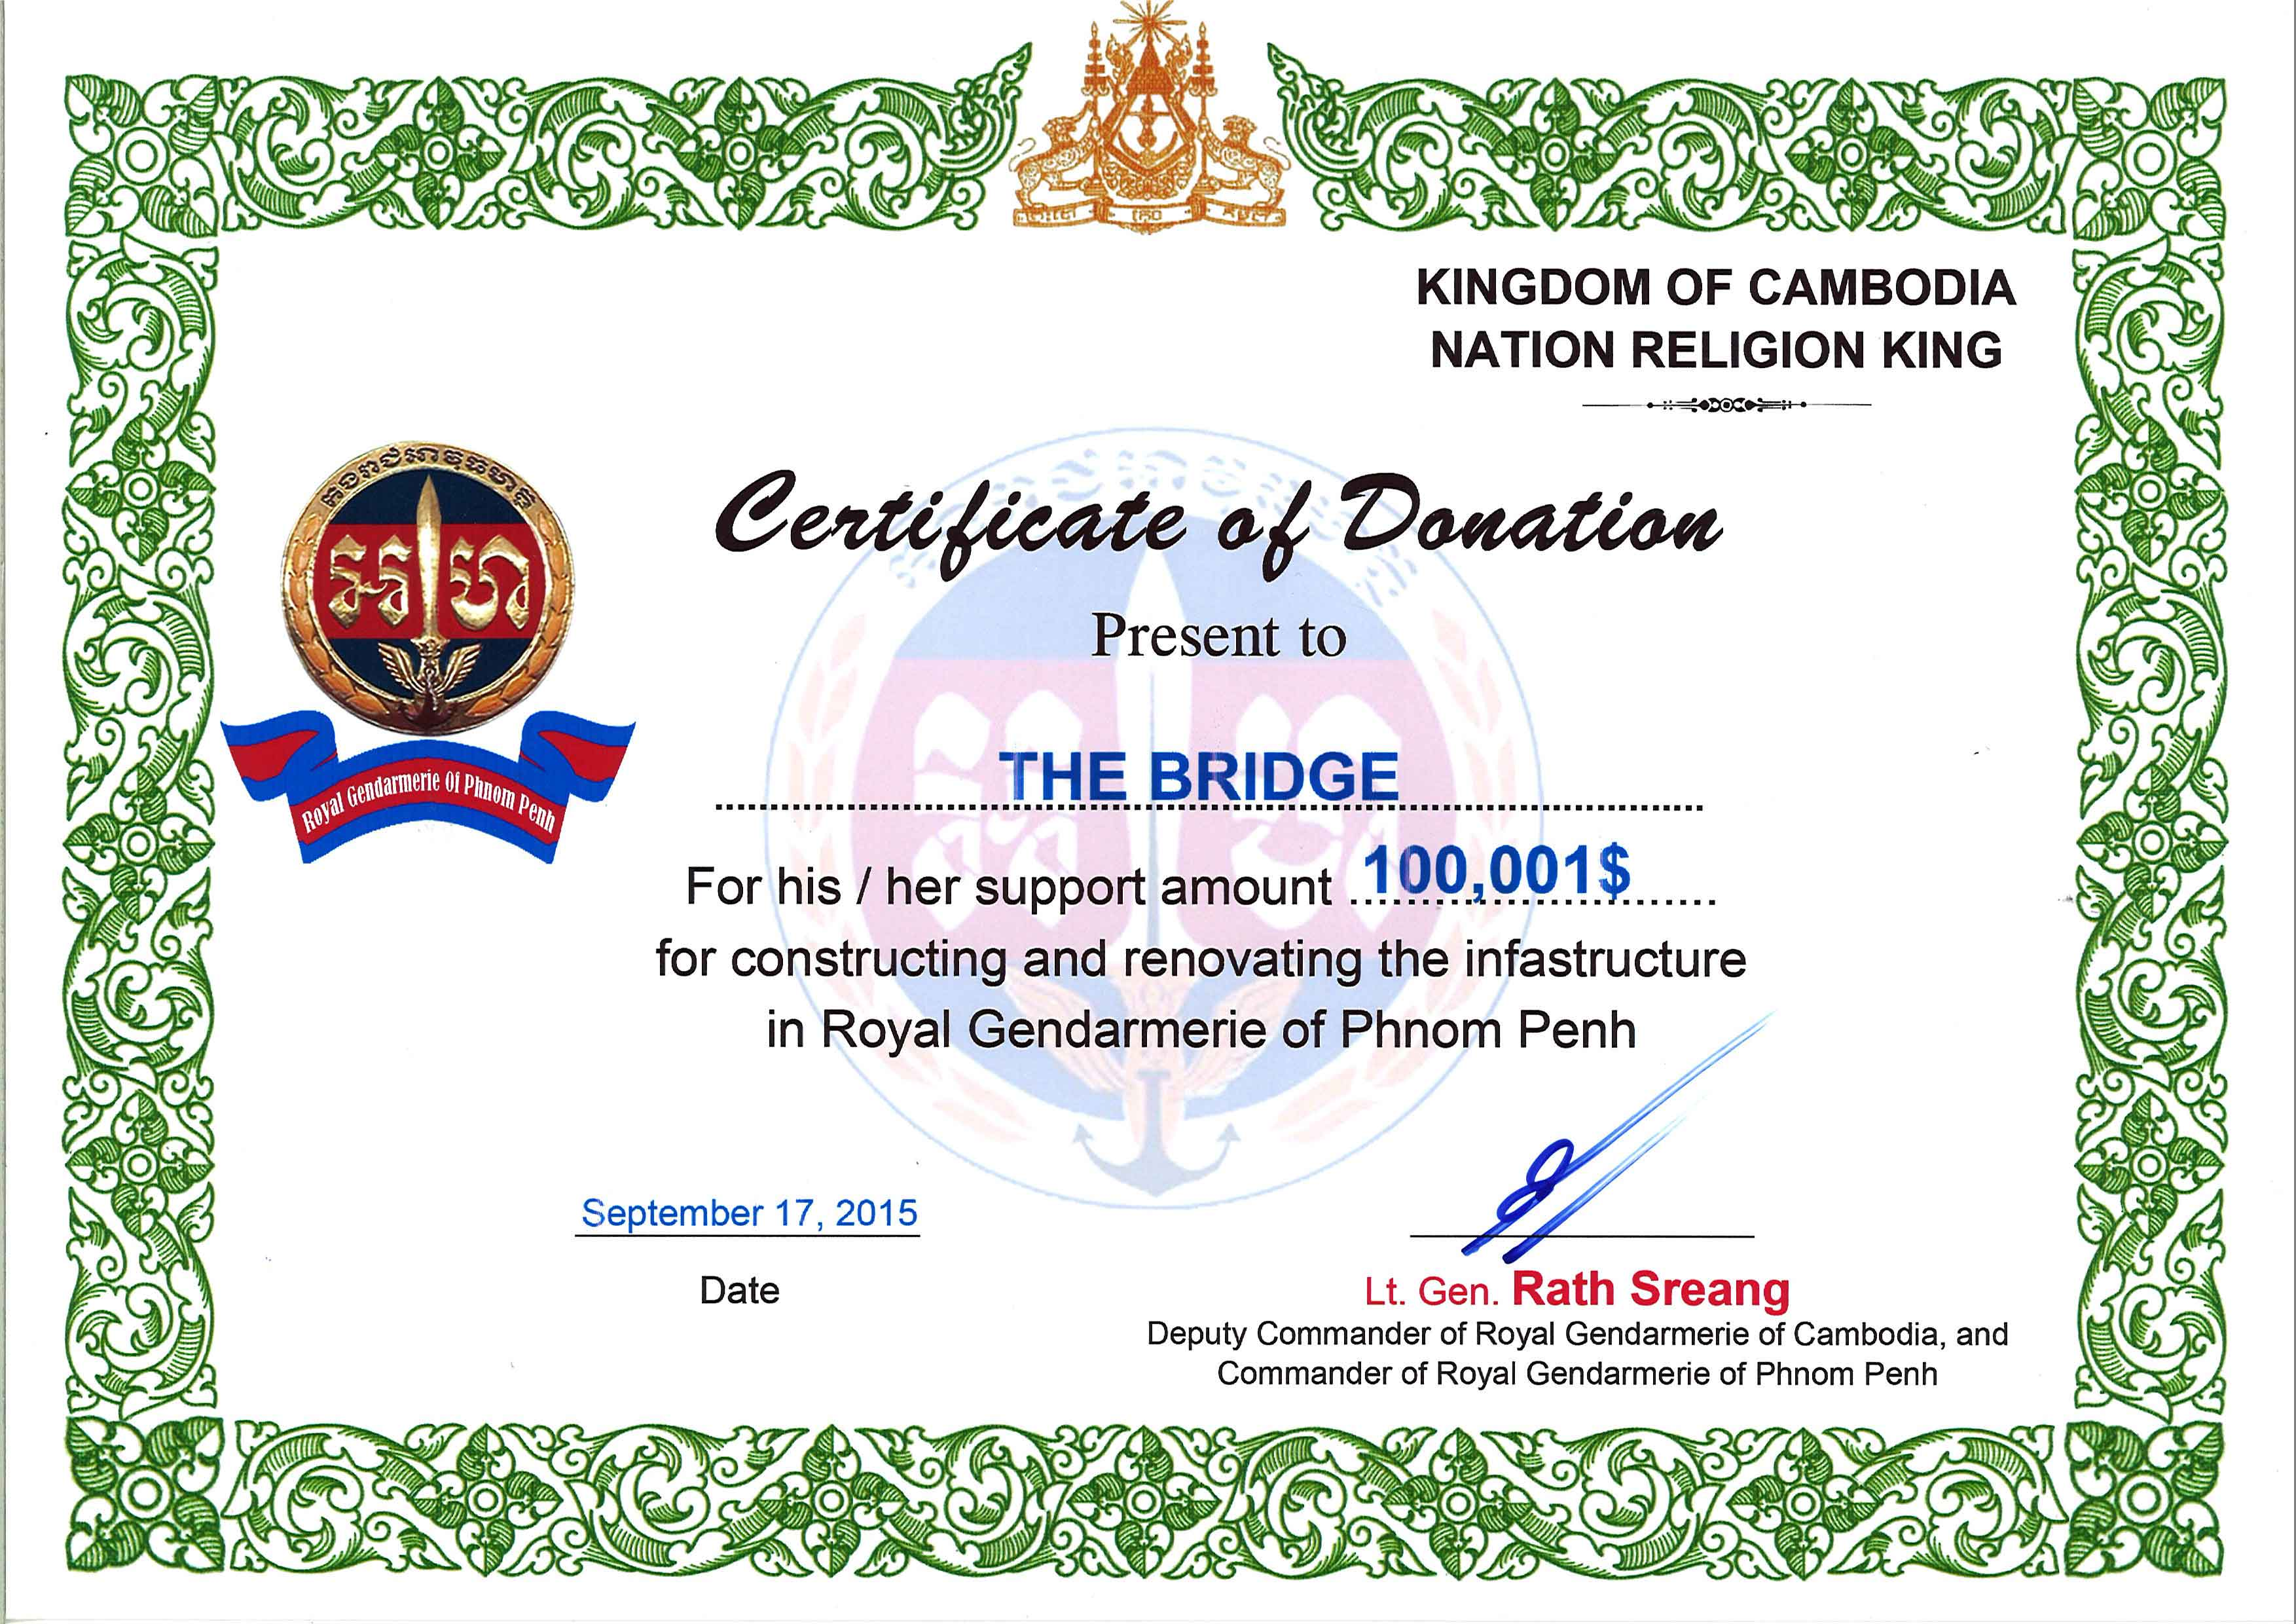 Donation to the renovation & Construction of Gendarmerie of Phnom Penh